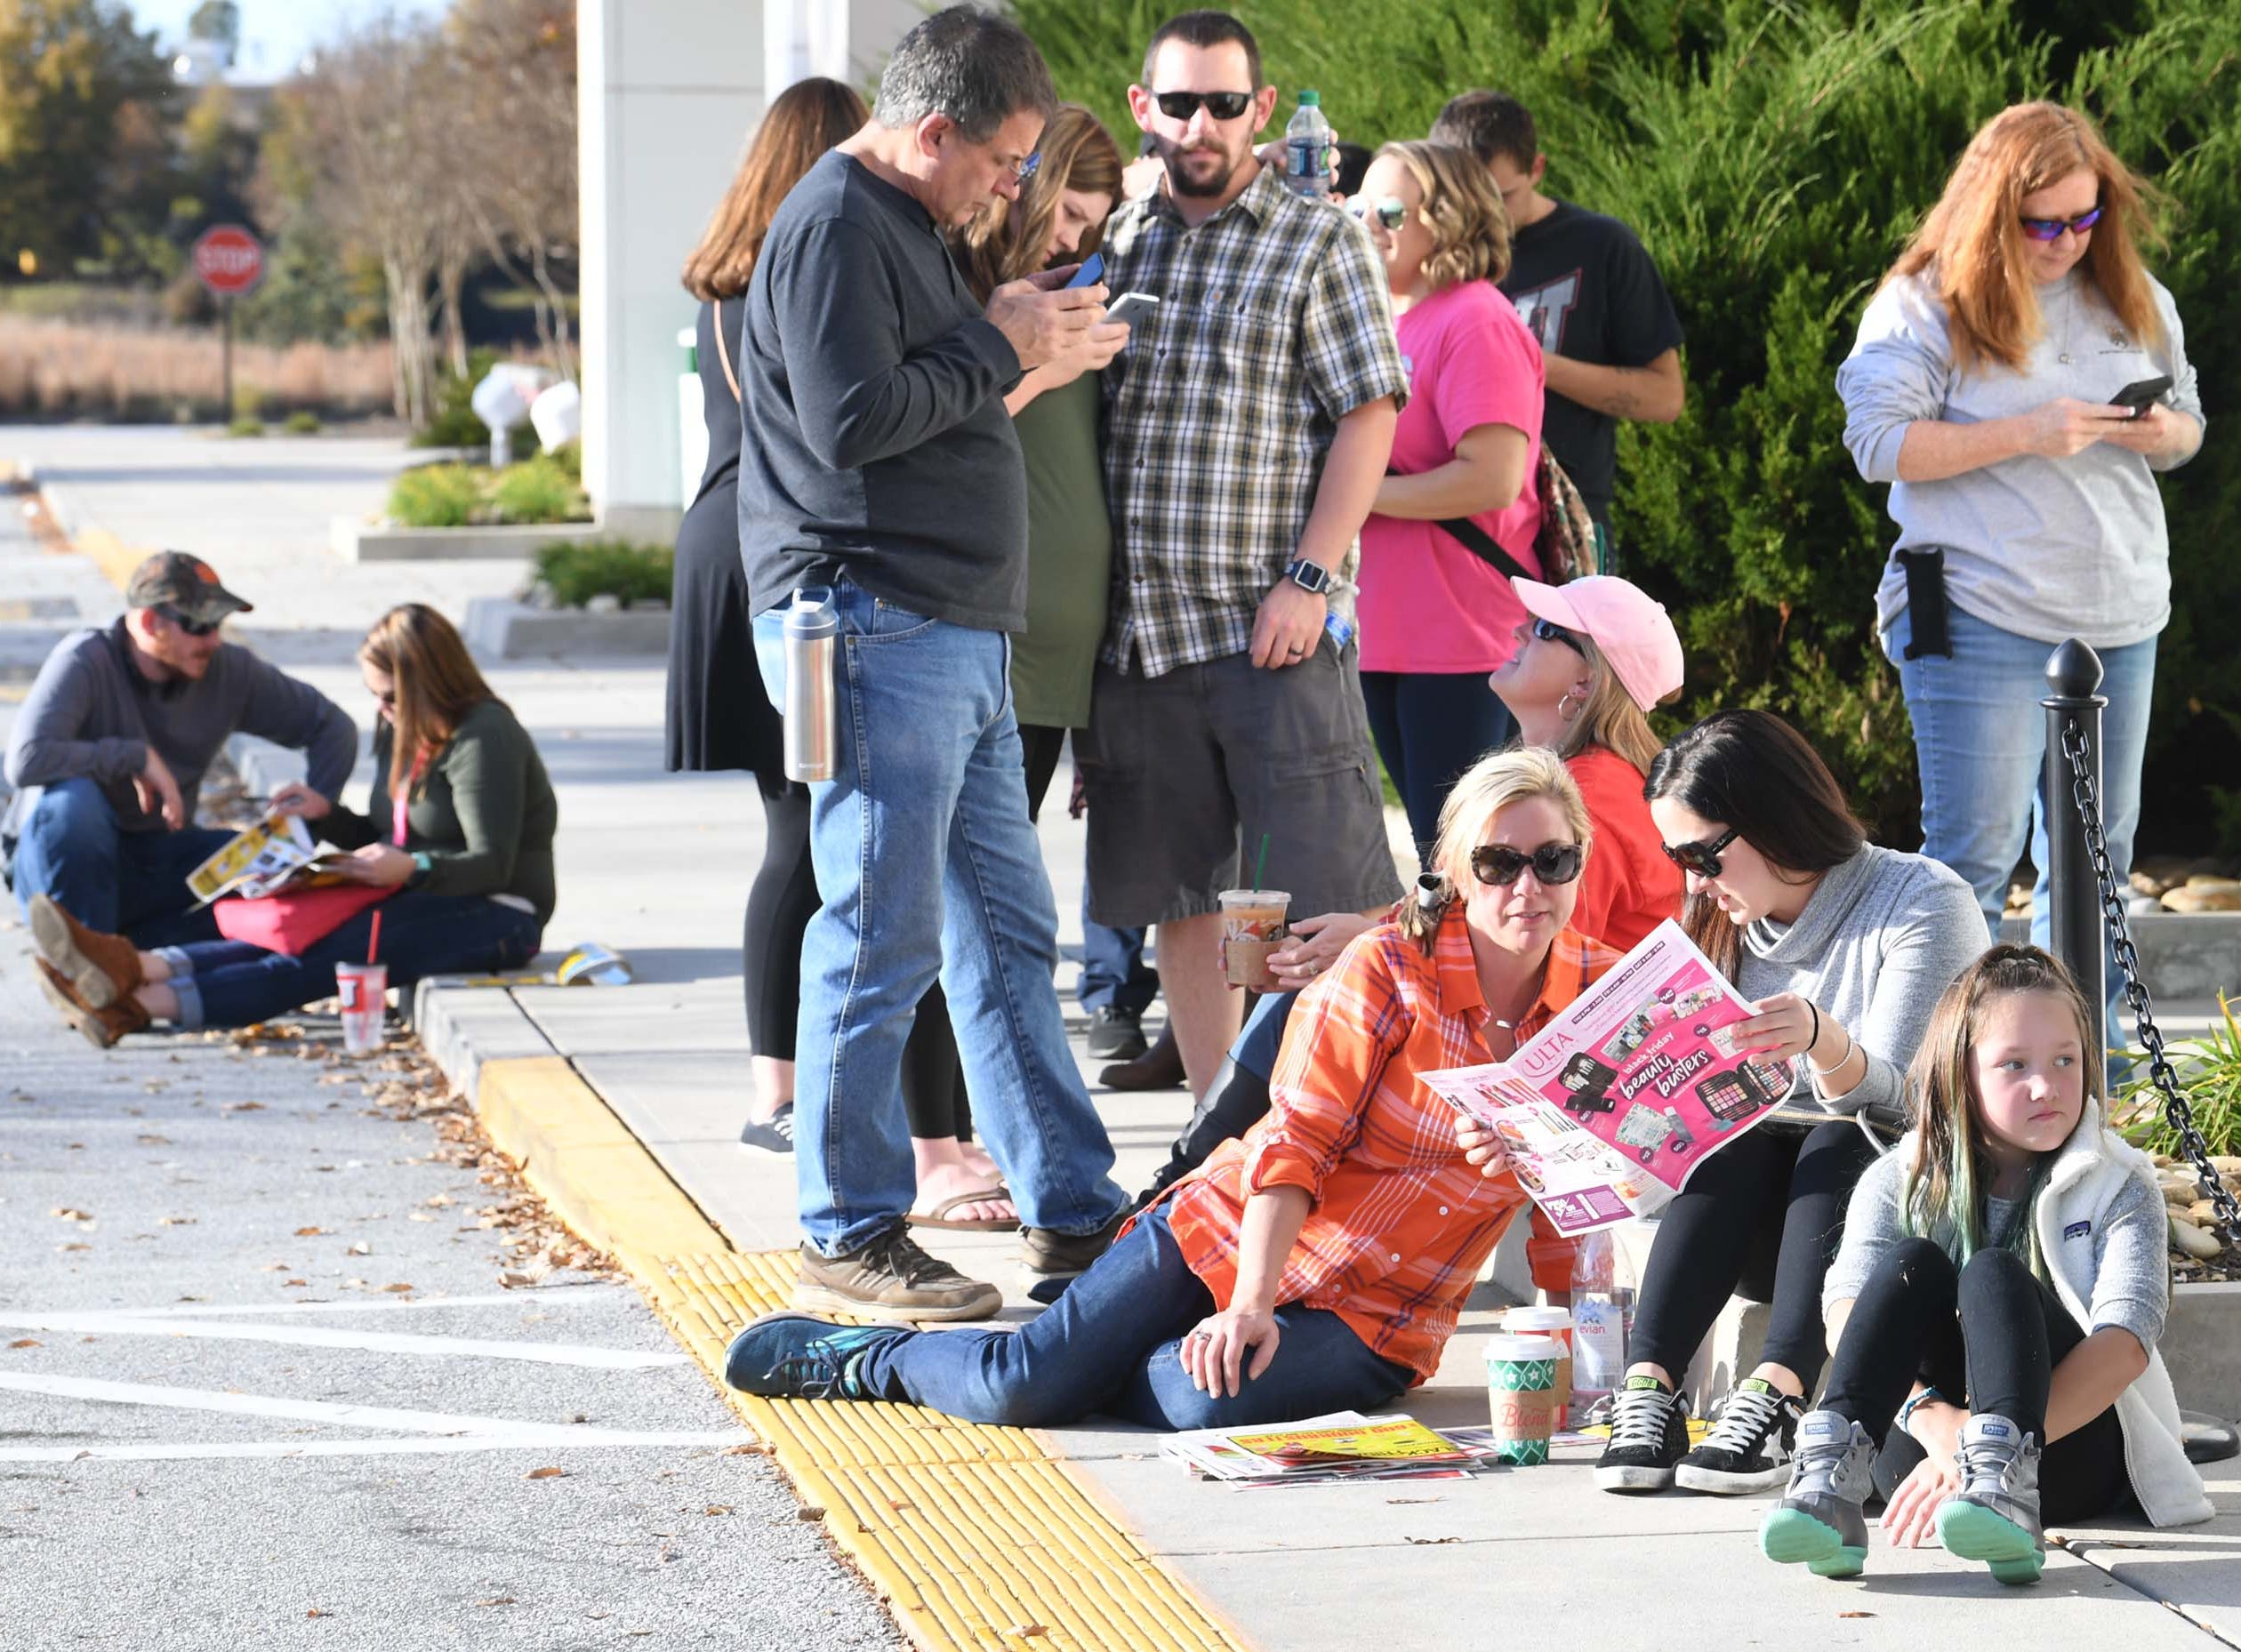 First in line, Sunny Davis, left, Victoria Bonnette, and Lilah Bonnette look at newspaper ads while waiting in line for doors to open for Black Friday sales at Kohl's in Anderson on Thanksgiving Day, Thursday, November 22, 2018.